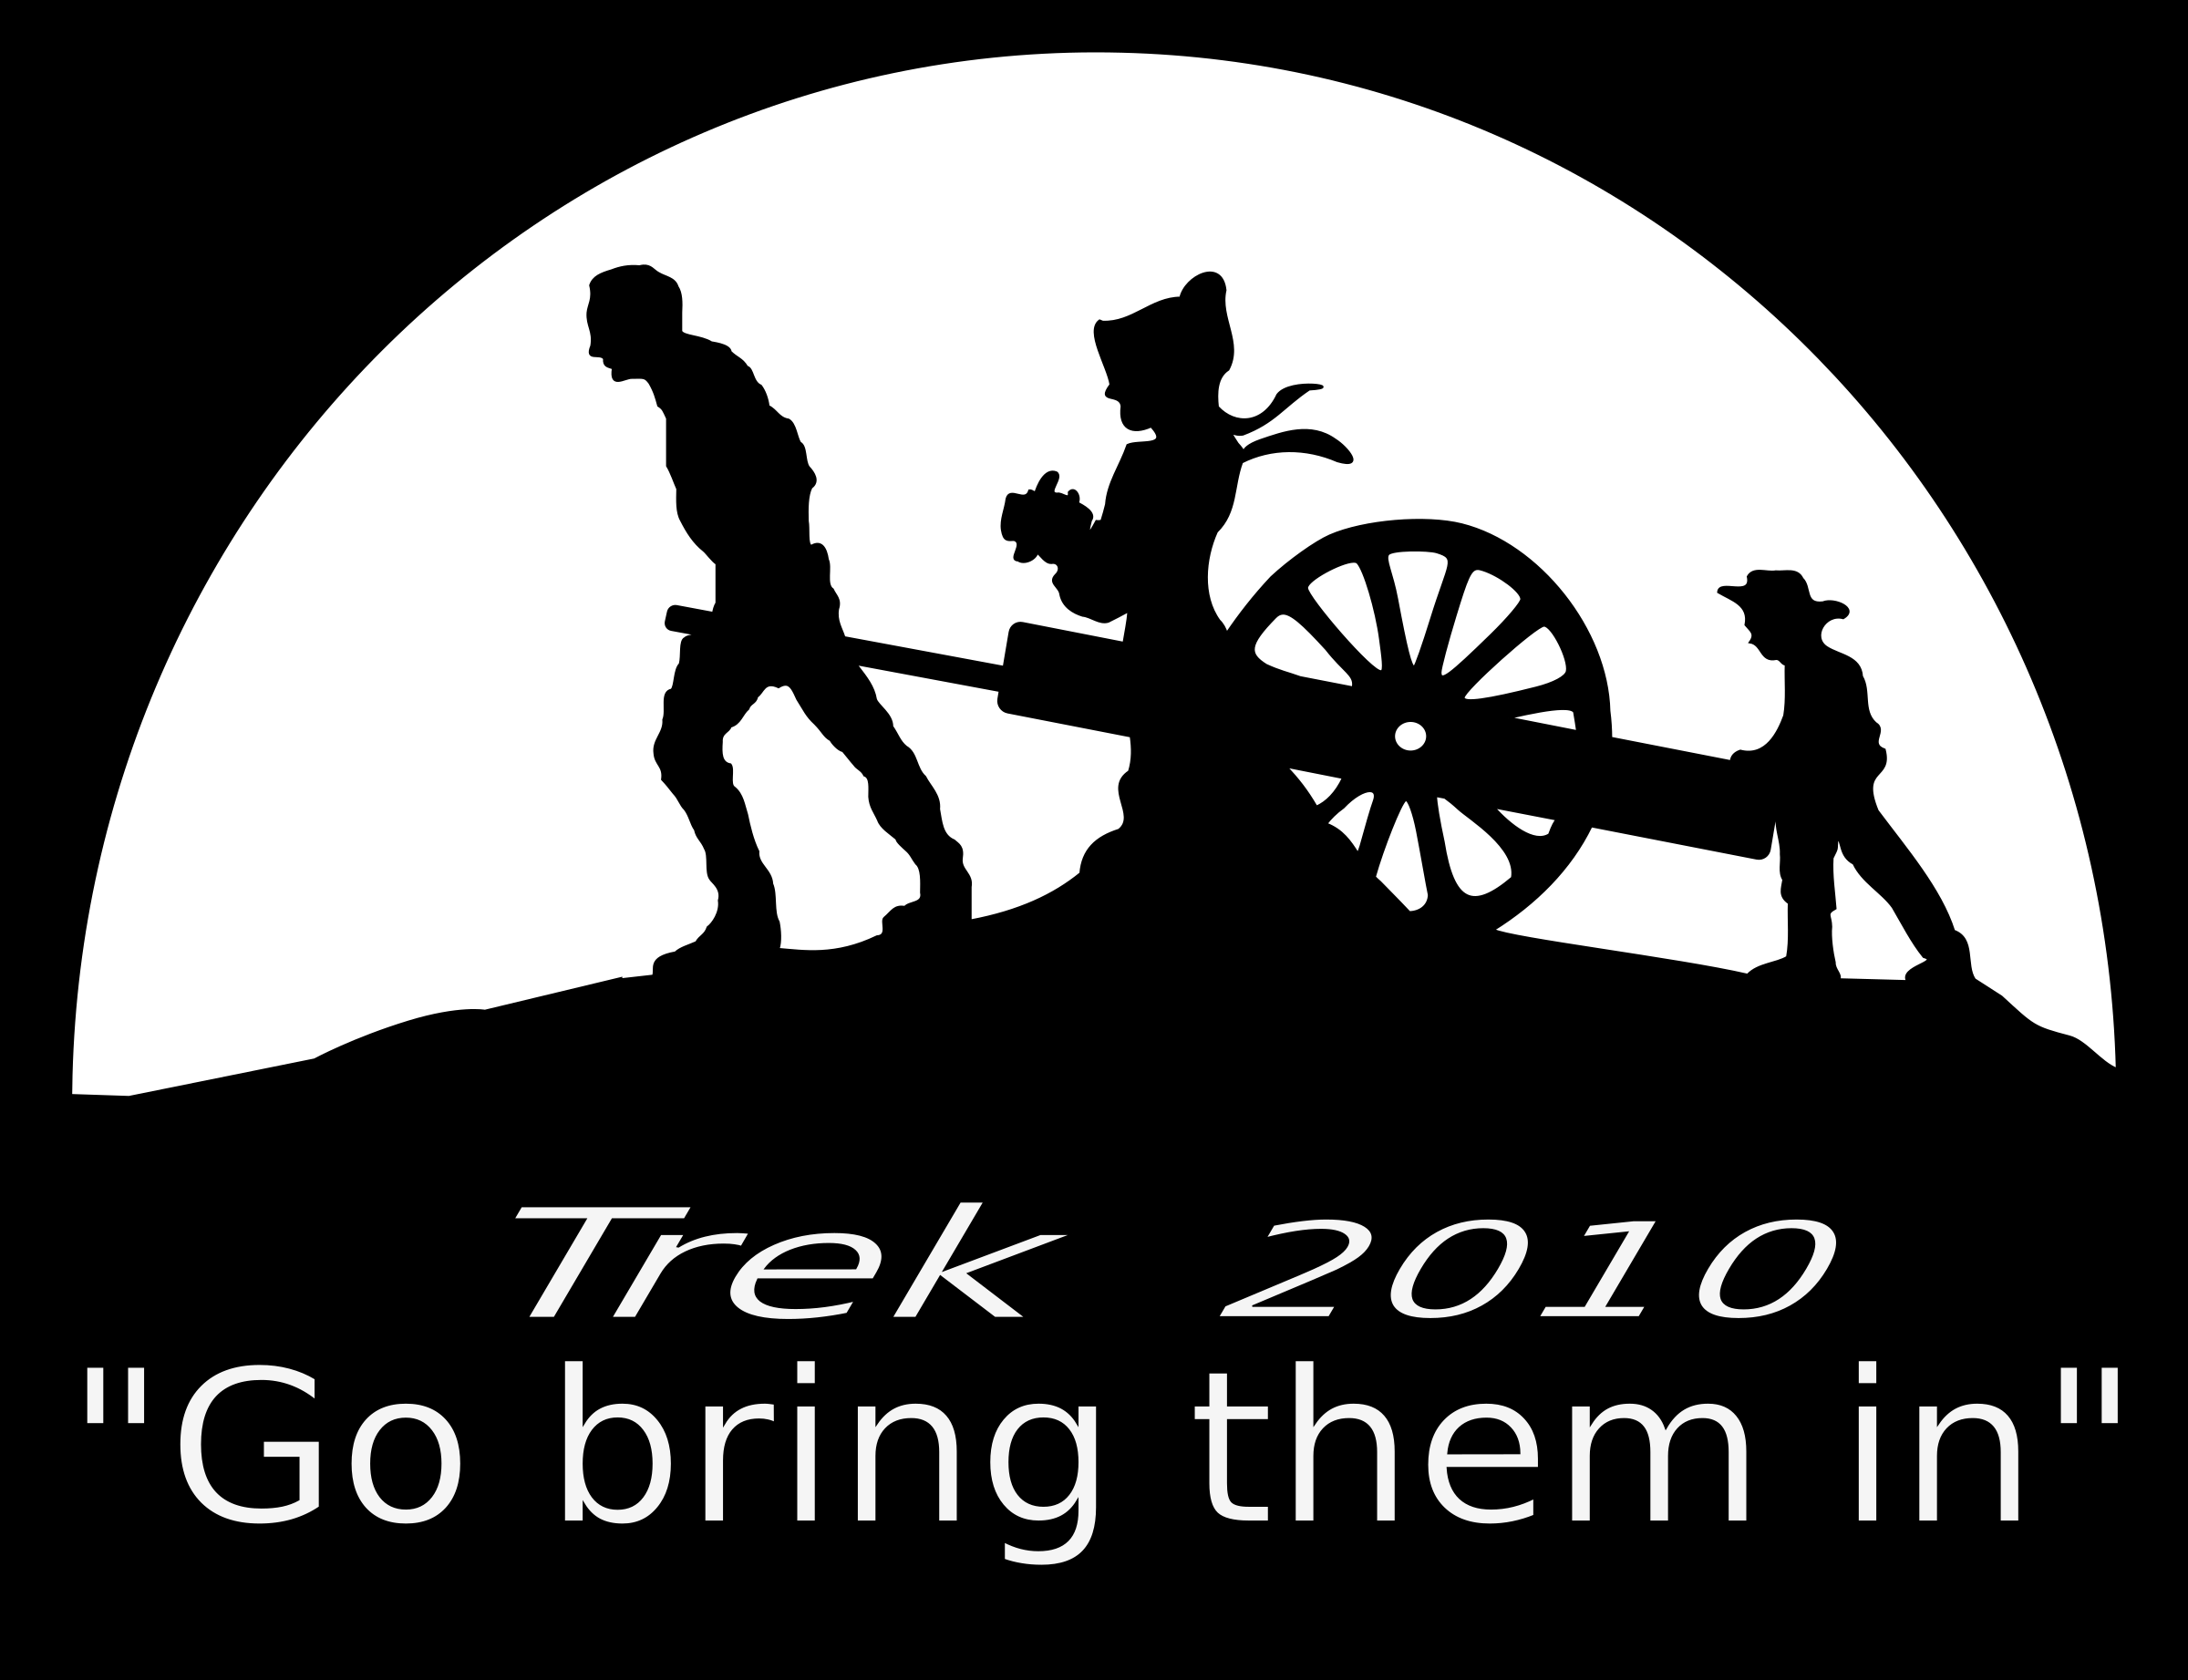 Pioneer Trek Logo by Jack_Rabbit